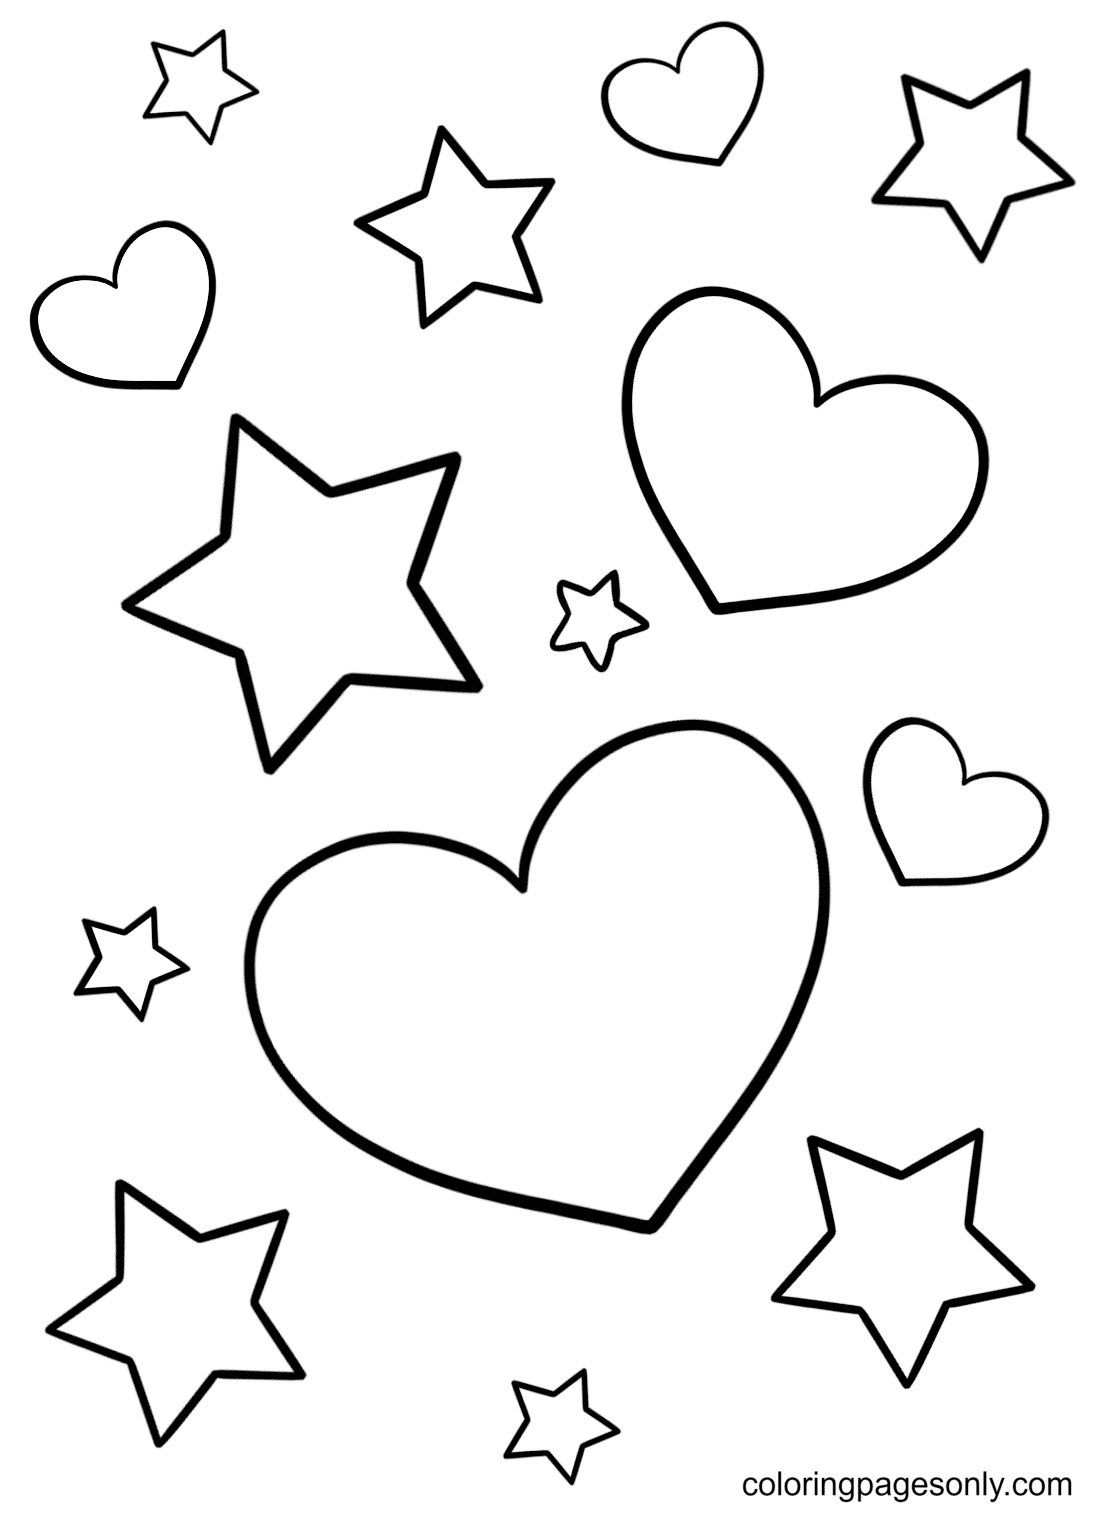 Hearts And Stars Coloring Page